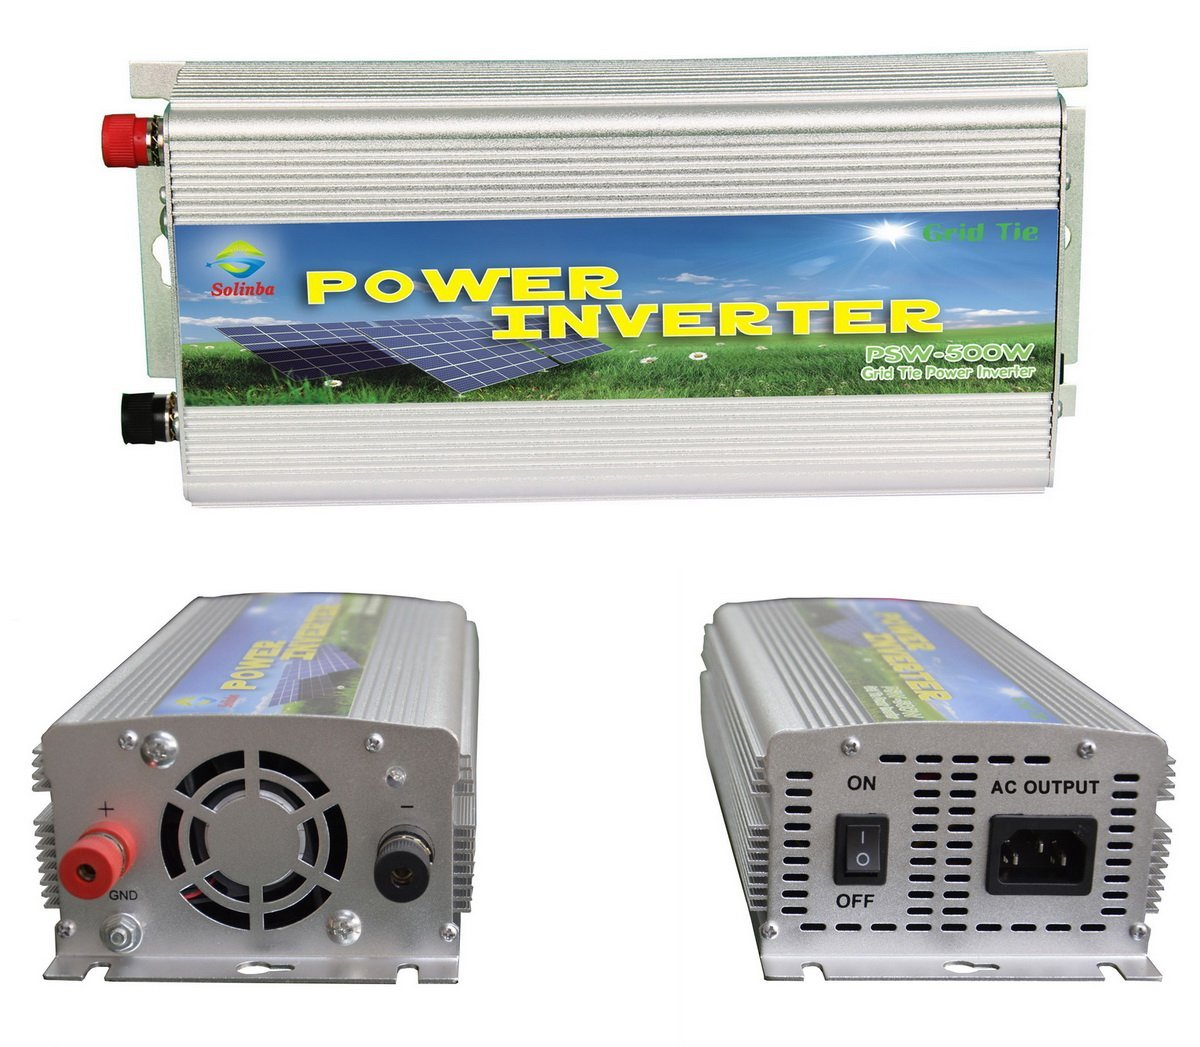 Solinba Micro Grid Tie Power Inverter 500w, Converter, MPPT, for Solar Panel, Silver, EU, DC22v-56v to AC 220v